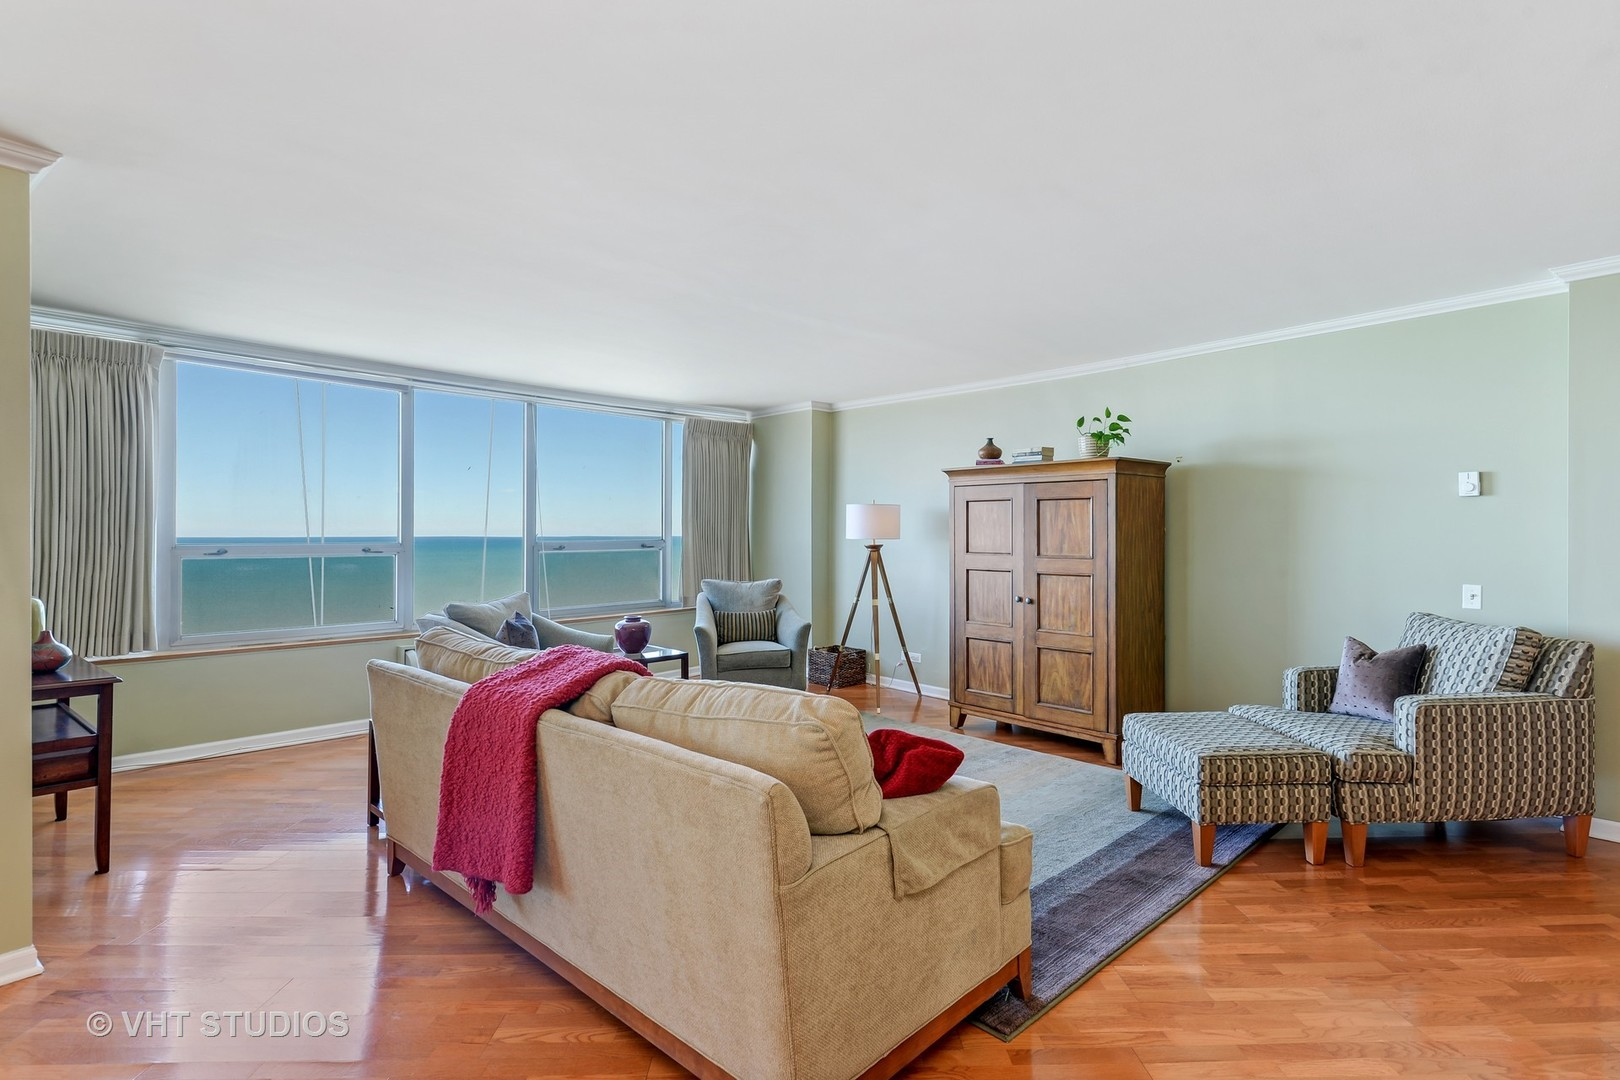 6101 Sheridan Unit Unit 34d ,Chicago, Illinois 60660